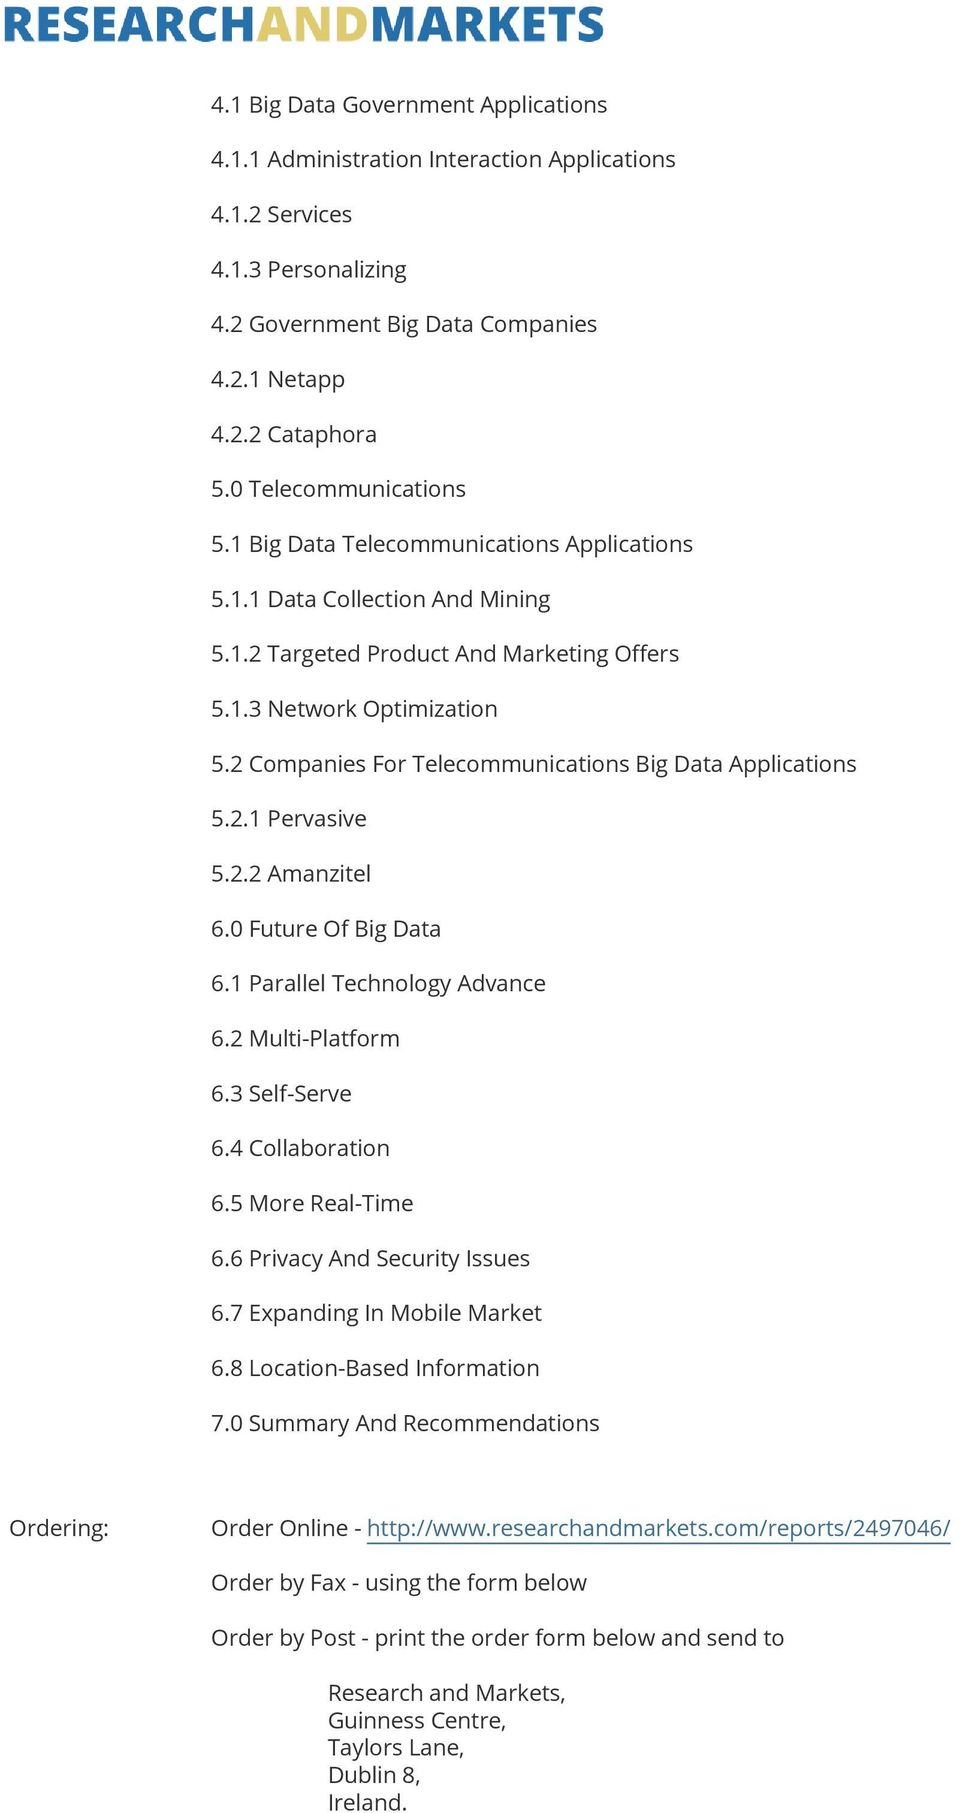 2 Companies For Telecommunications Big Data Applications 5.2.1 Pervasive 5.2.2 Amanzitel 6.0 Future Of Big Data 6.1 Parallel Technology Advance 6.2 Multi-Platform 6.3 Self-Serve 6.4 Collaboration 6.